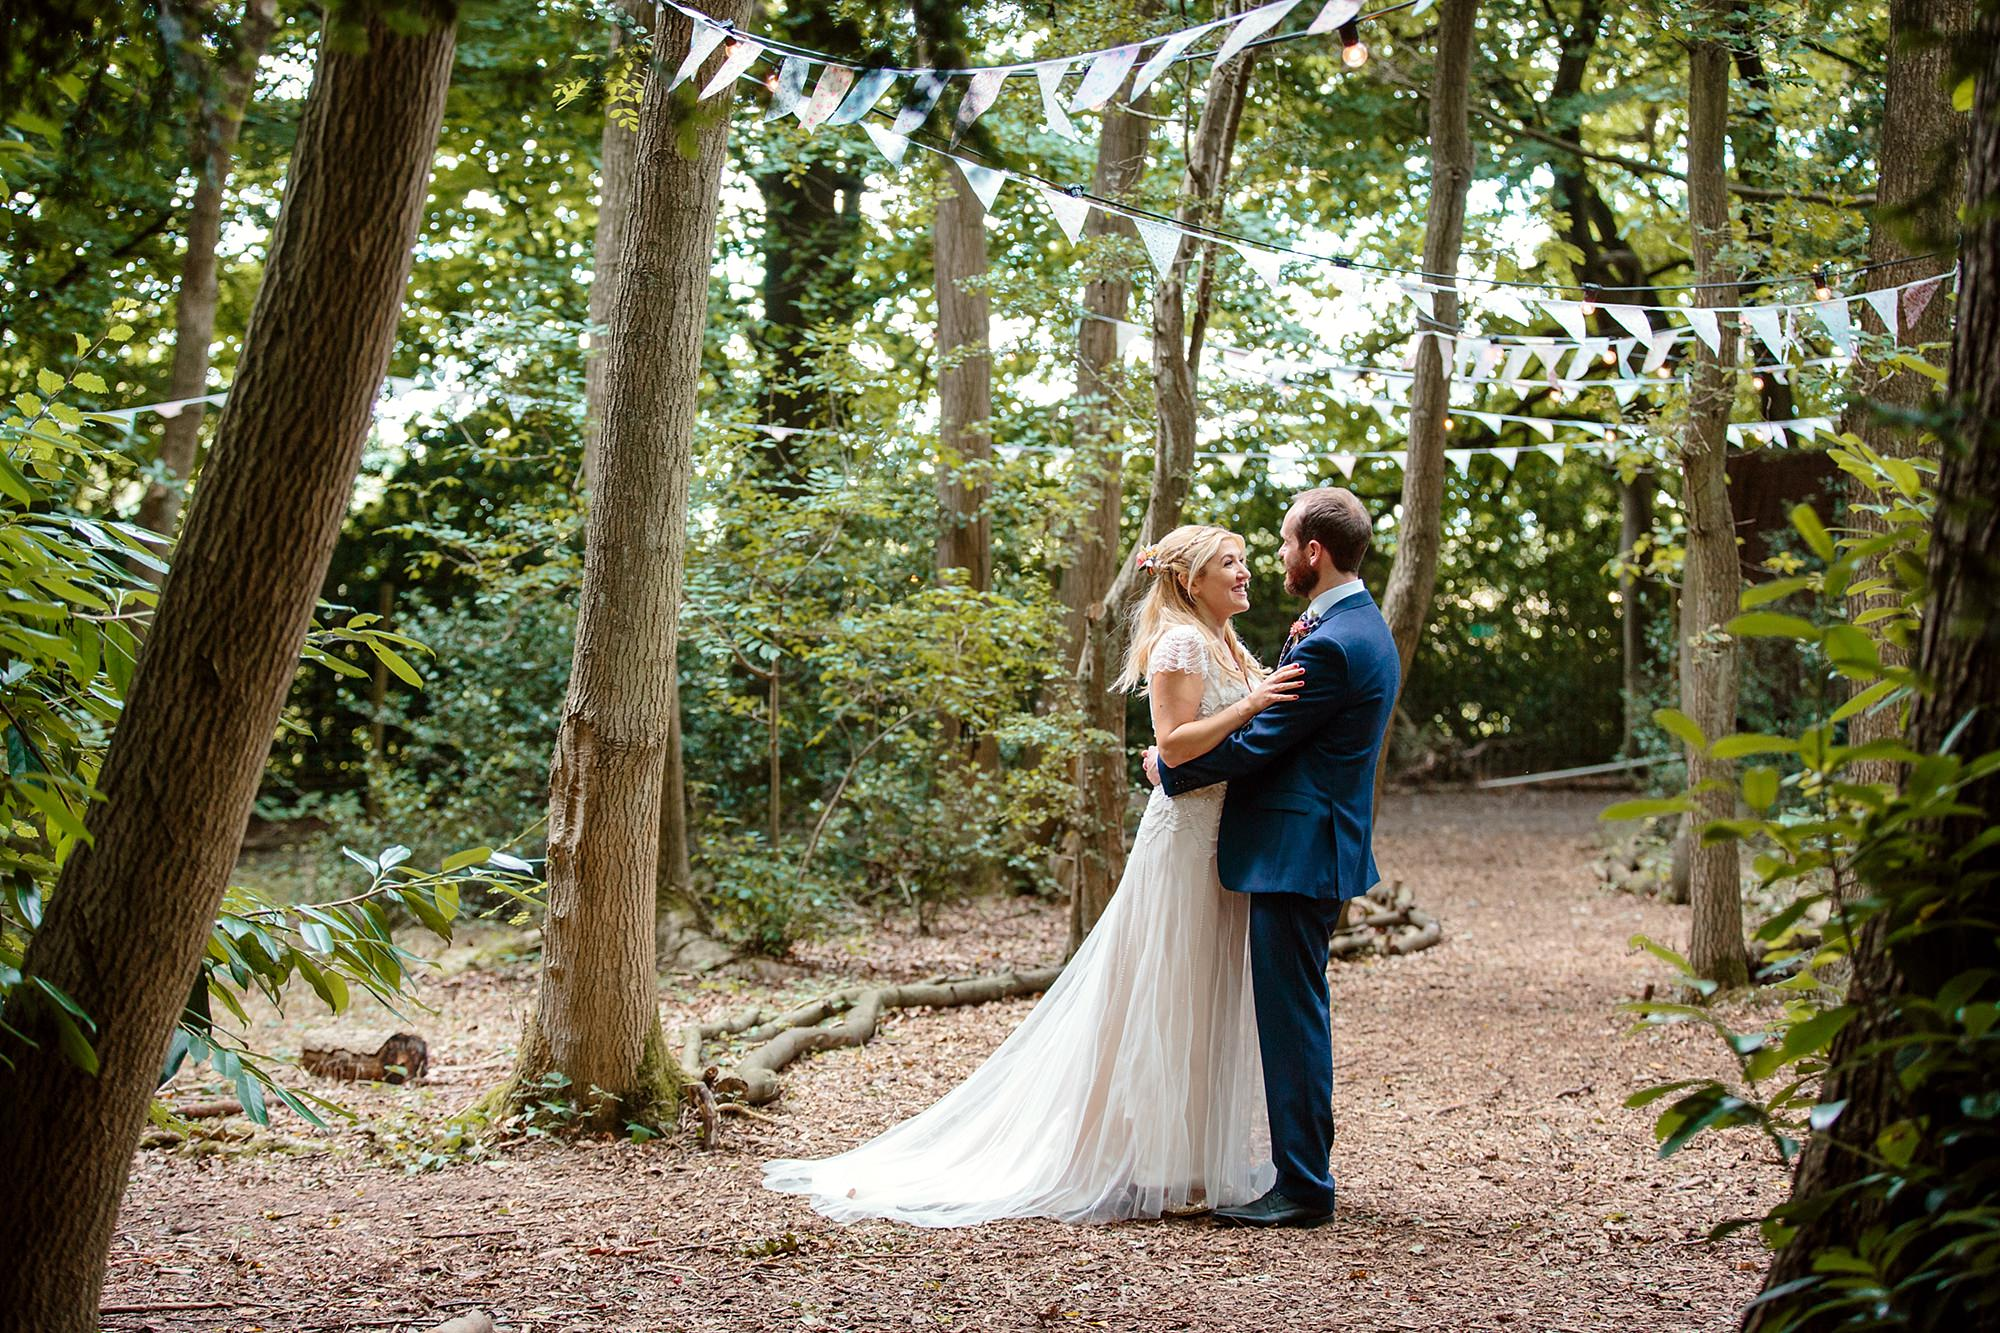 Woodland Weddings Tring bride and groom in woods